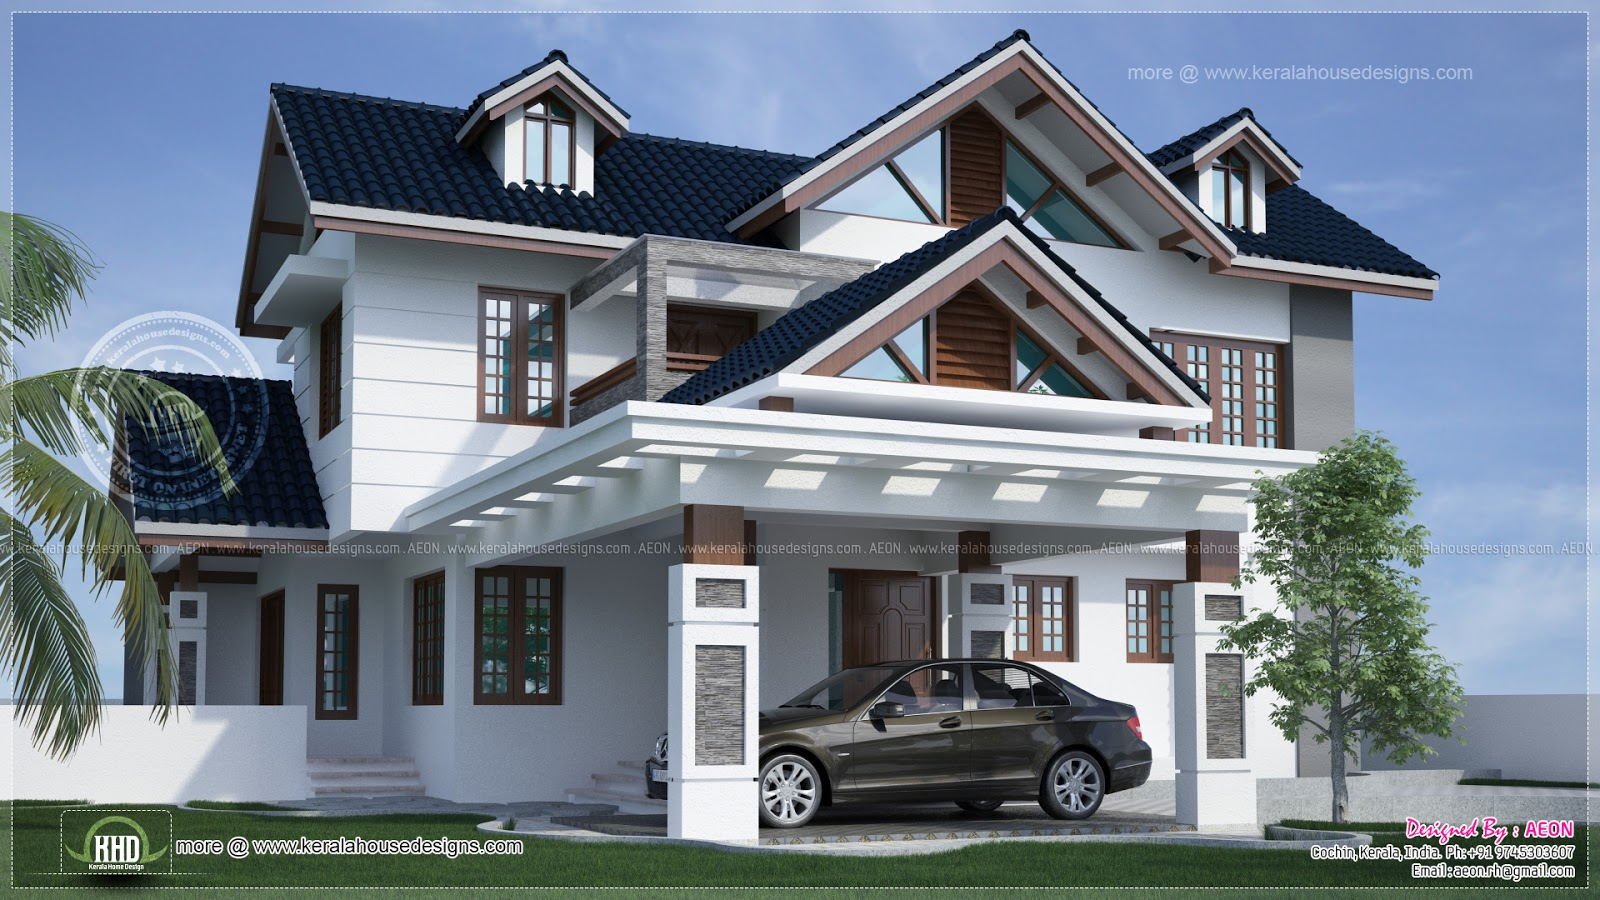 River side kerala style residence exterior design kerala for Home design front side